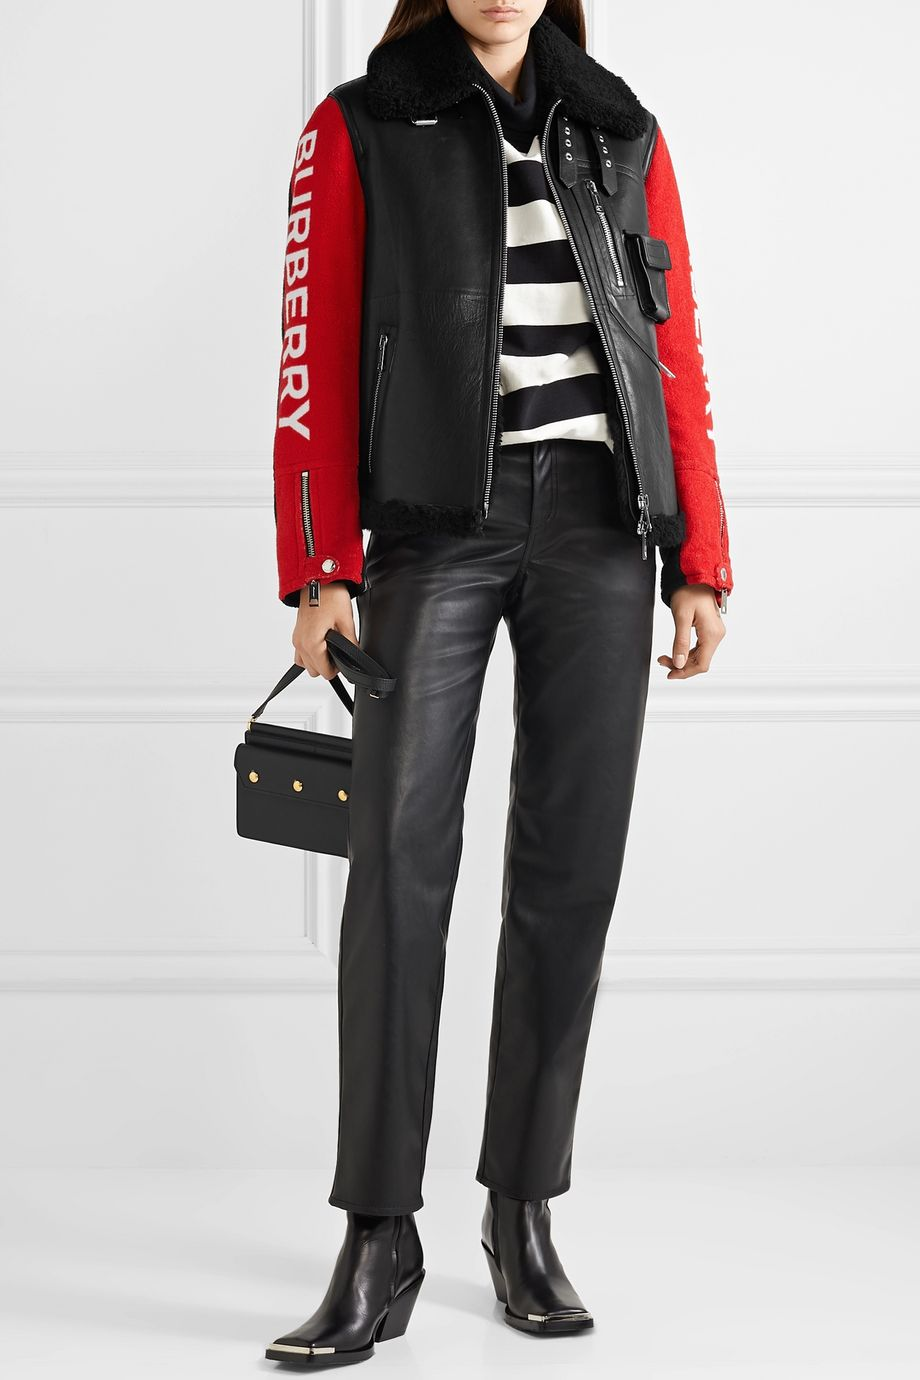 Burberry Paneled leather, shearling and cotton-terry jacket